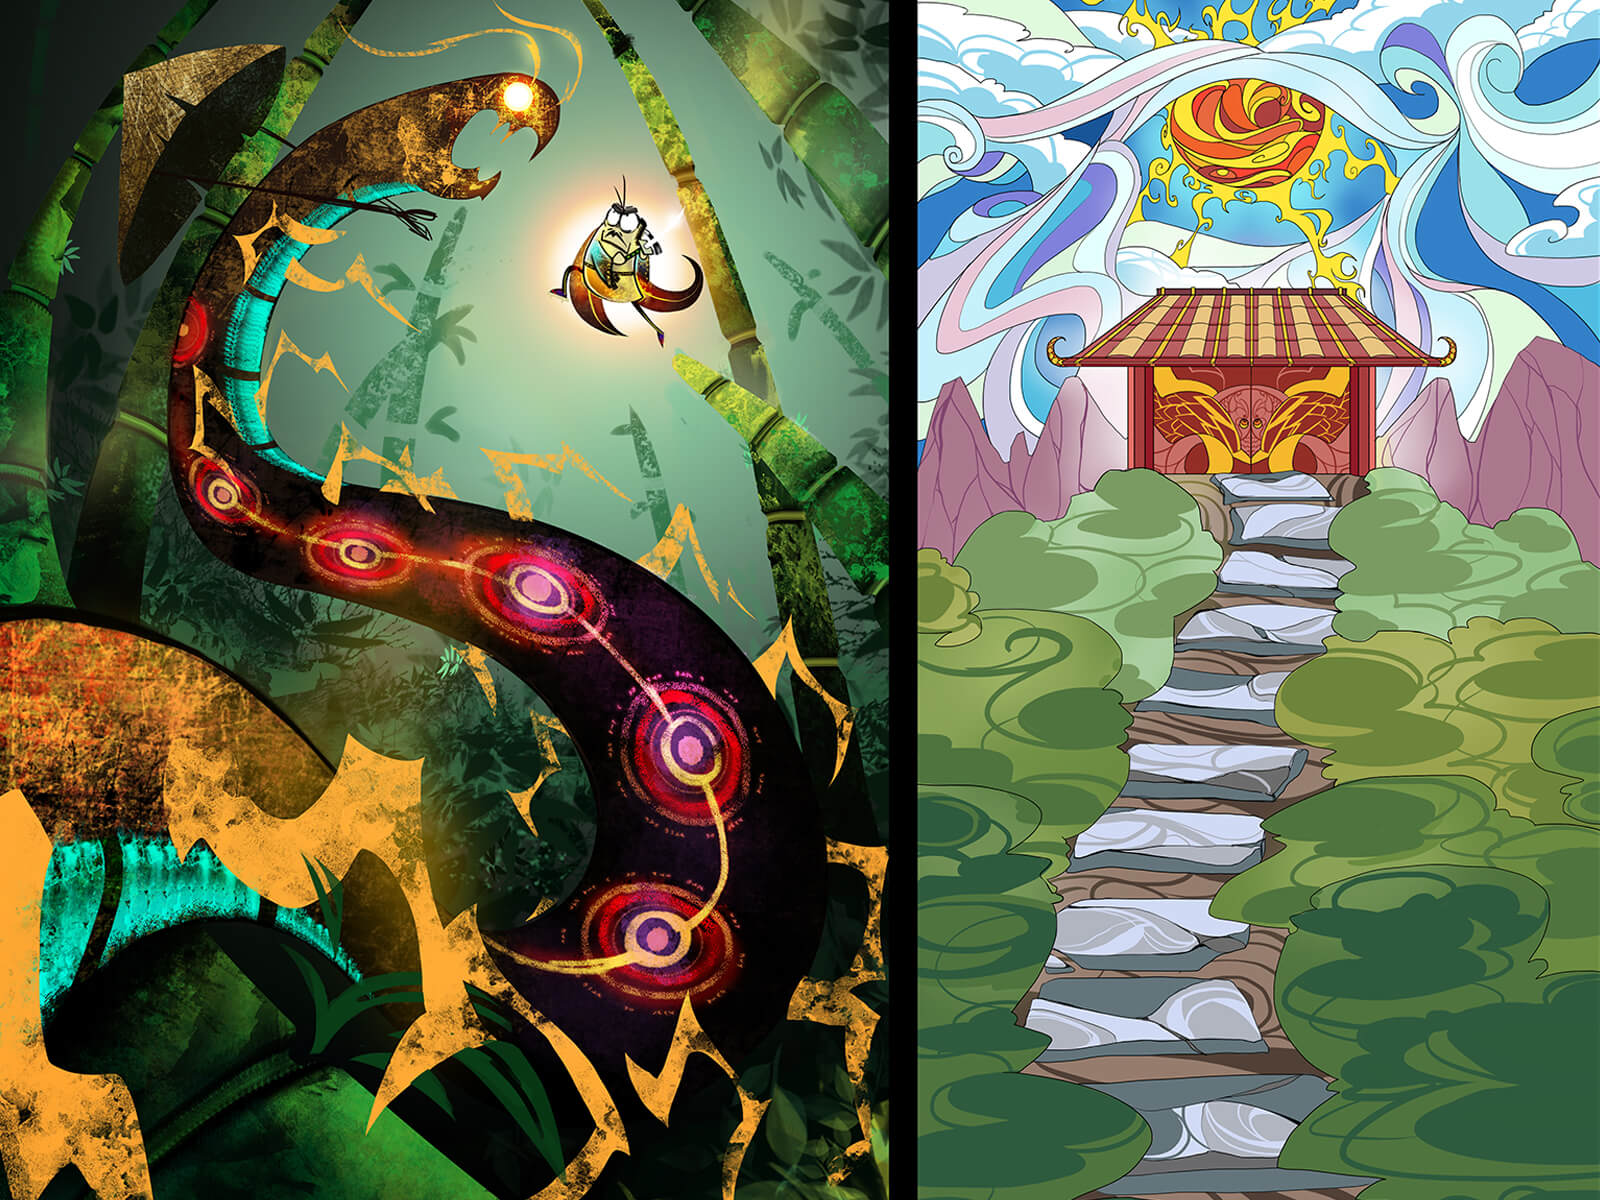 Two scenes in different art styles: a fight between beasts, and an ethereal temple